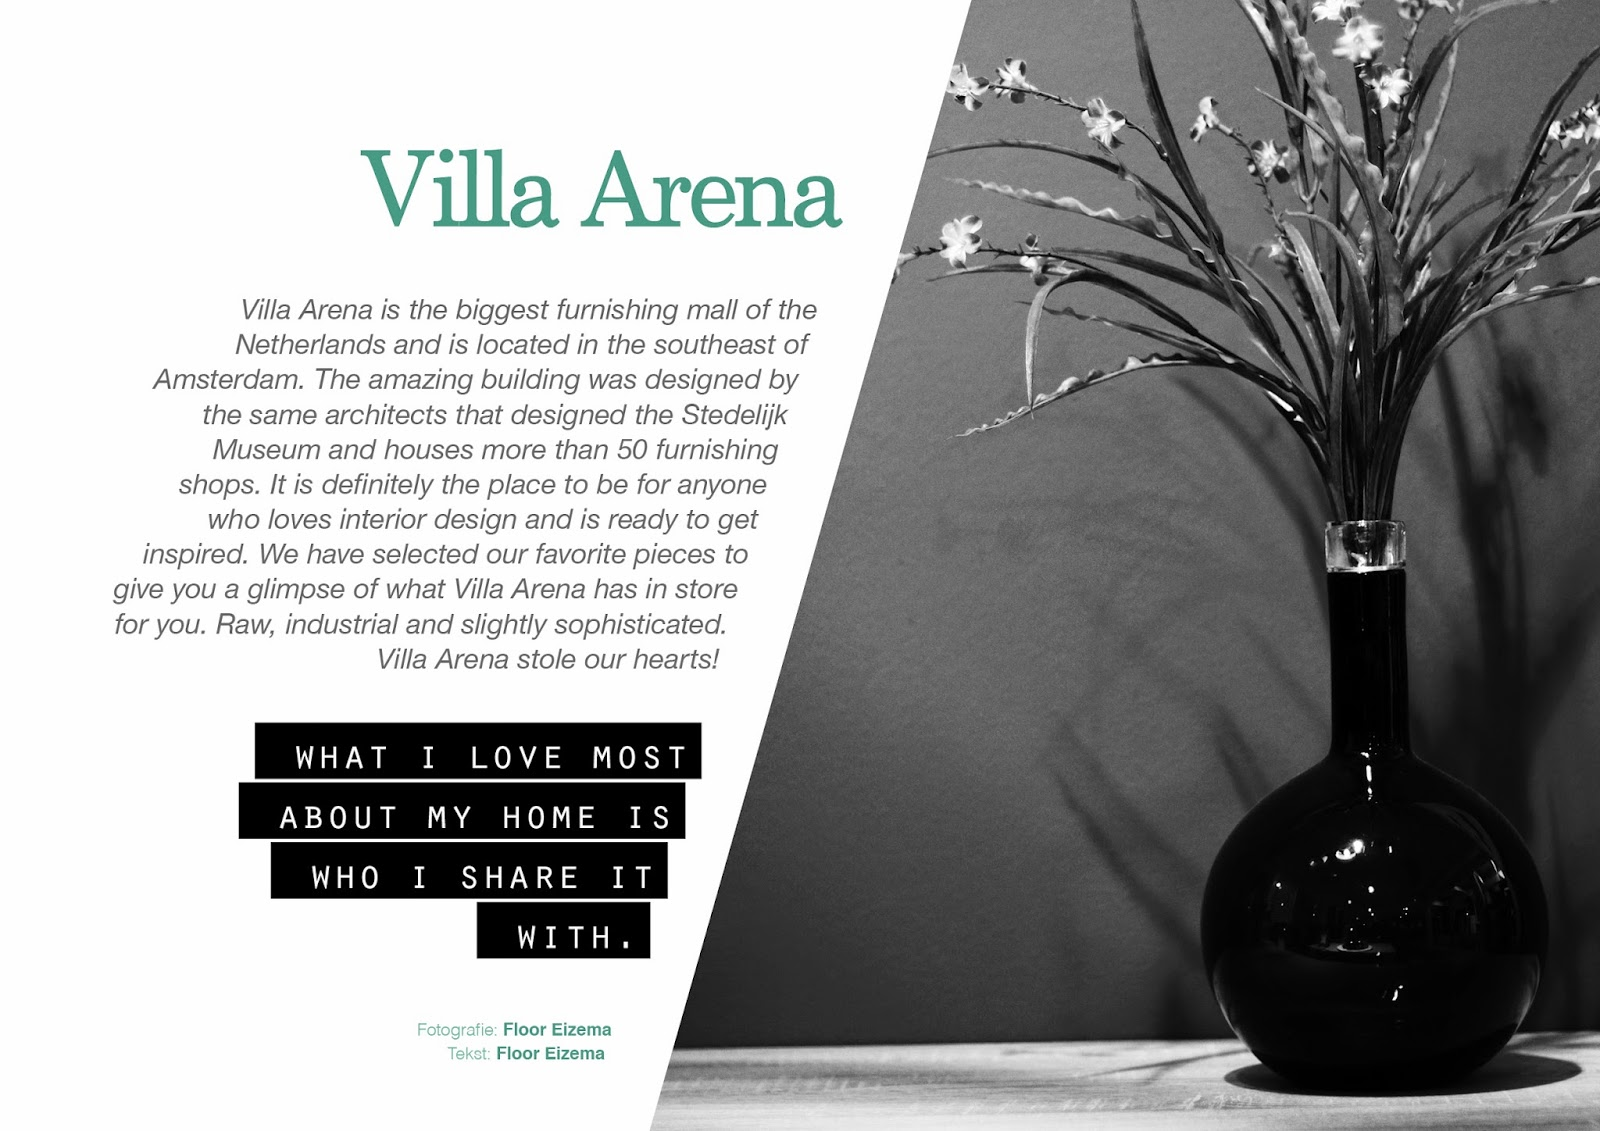 villa arena blog 2014 interior design ideas